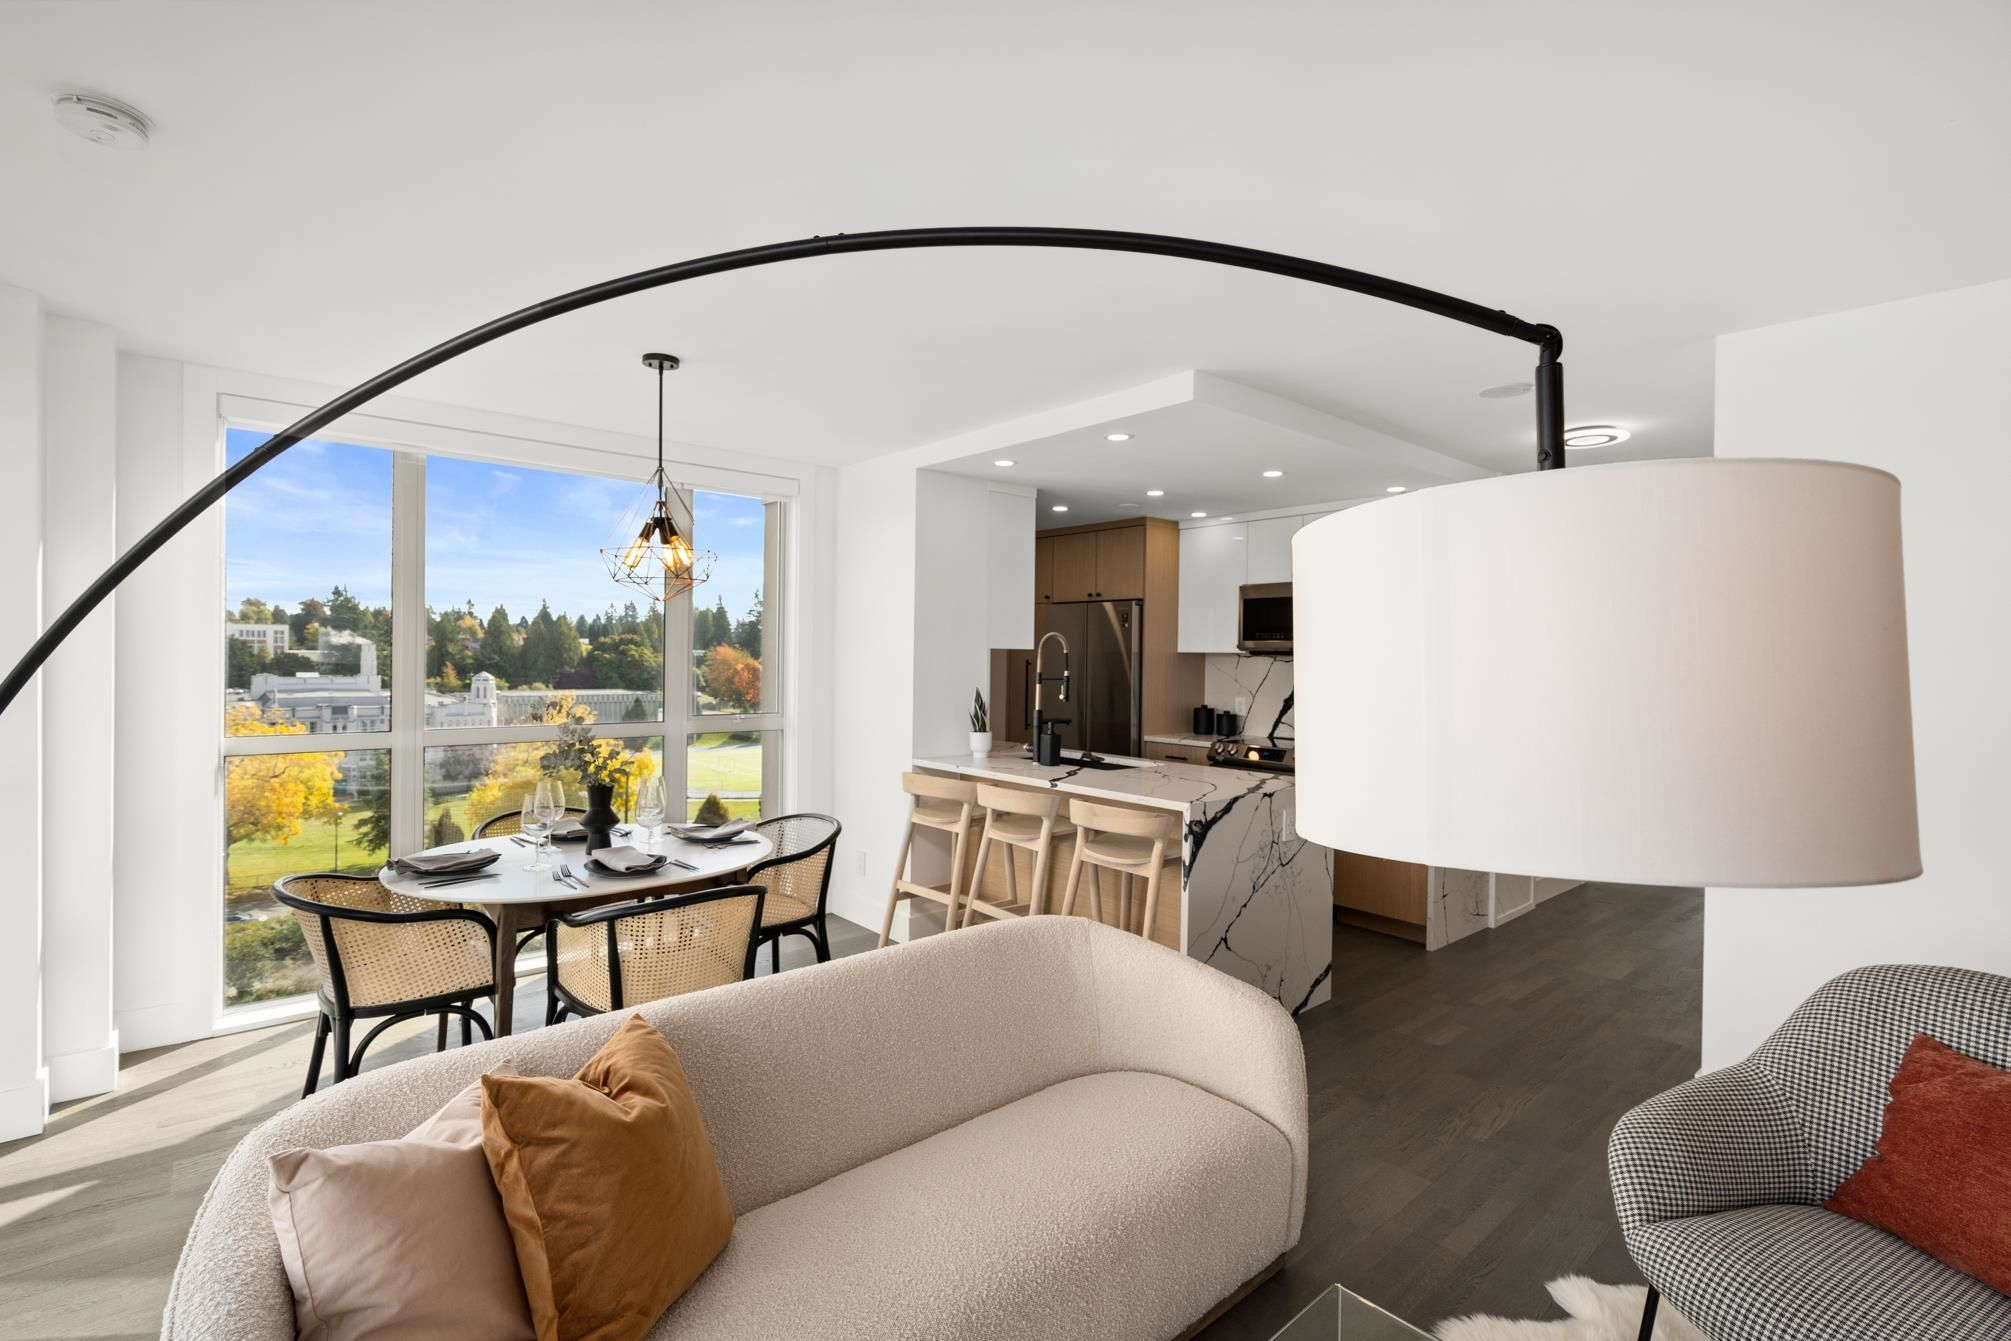 """Main Photo: 1001 2121 W 38TH Avenue in Vancouver: Kerrisdale Condo for sale in """"ASHLEIGH COURT"""" (Vancouver West)  : MLS®# R2624488"""